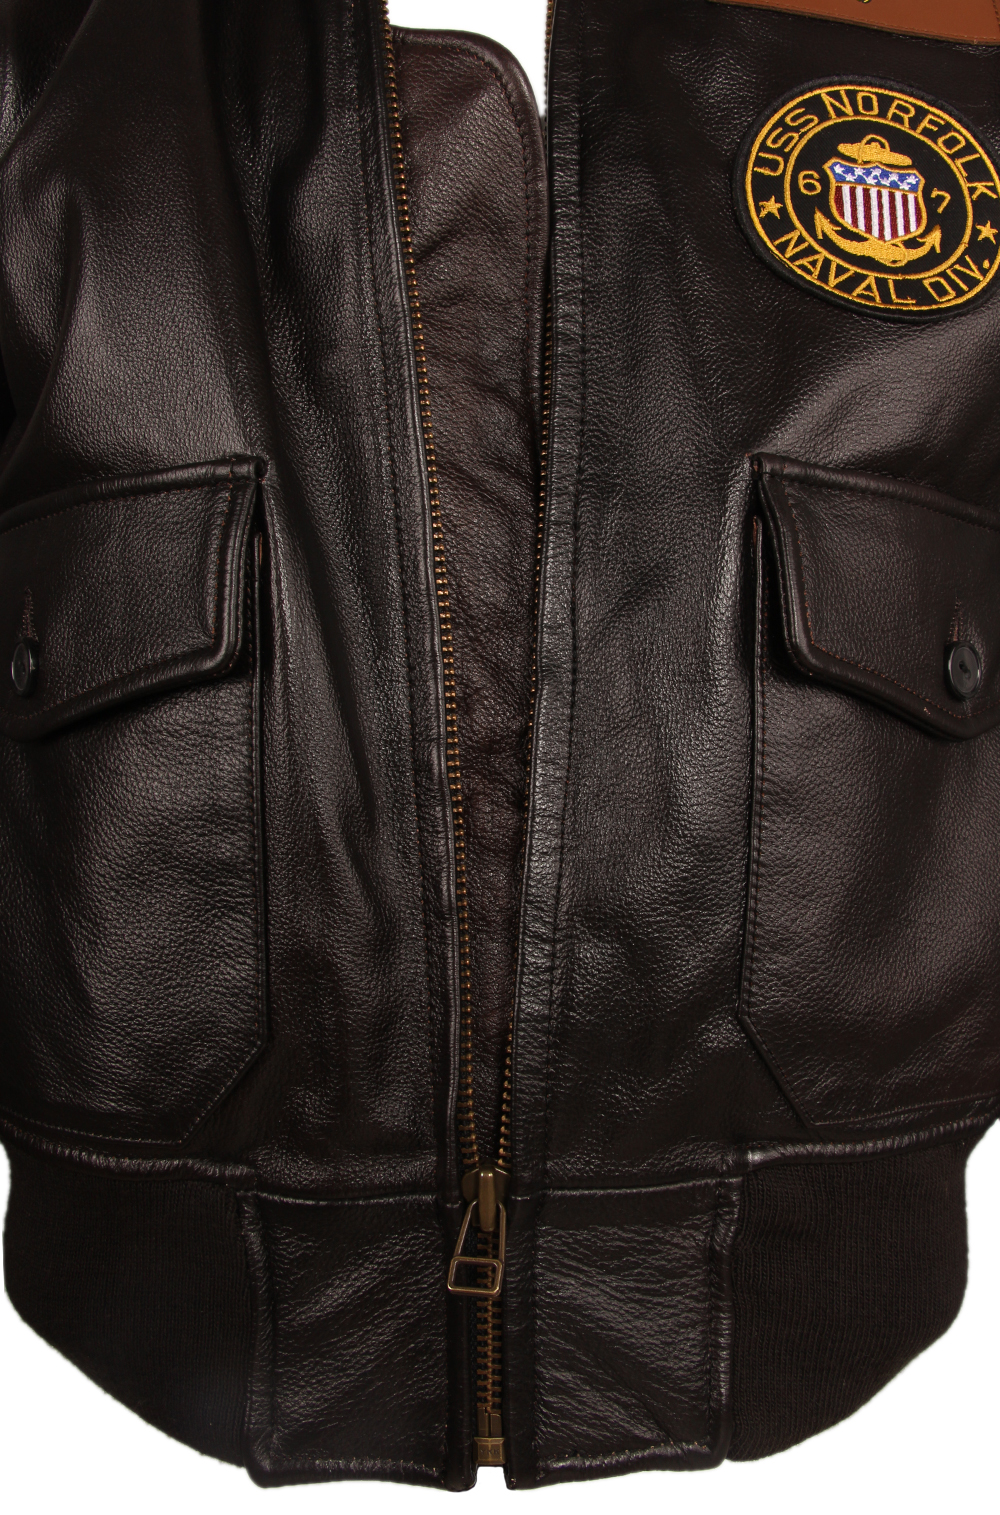 H934dde660ccd4b7990cd52e28c9cfd764 Vintage Distressed Men Leather Jacket Quilted Fur Collar 100% Calfskin Flight Jacket Men's Leather Jacket Man Winter Coat M253